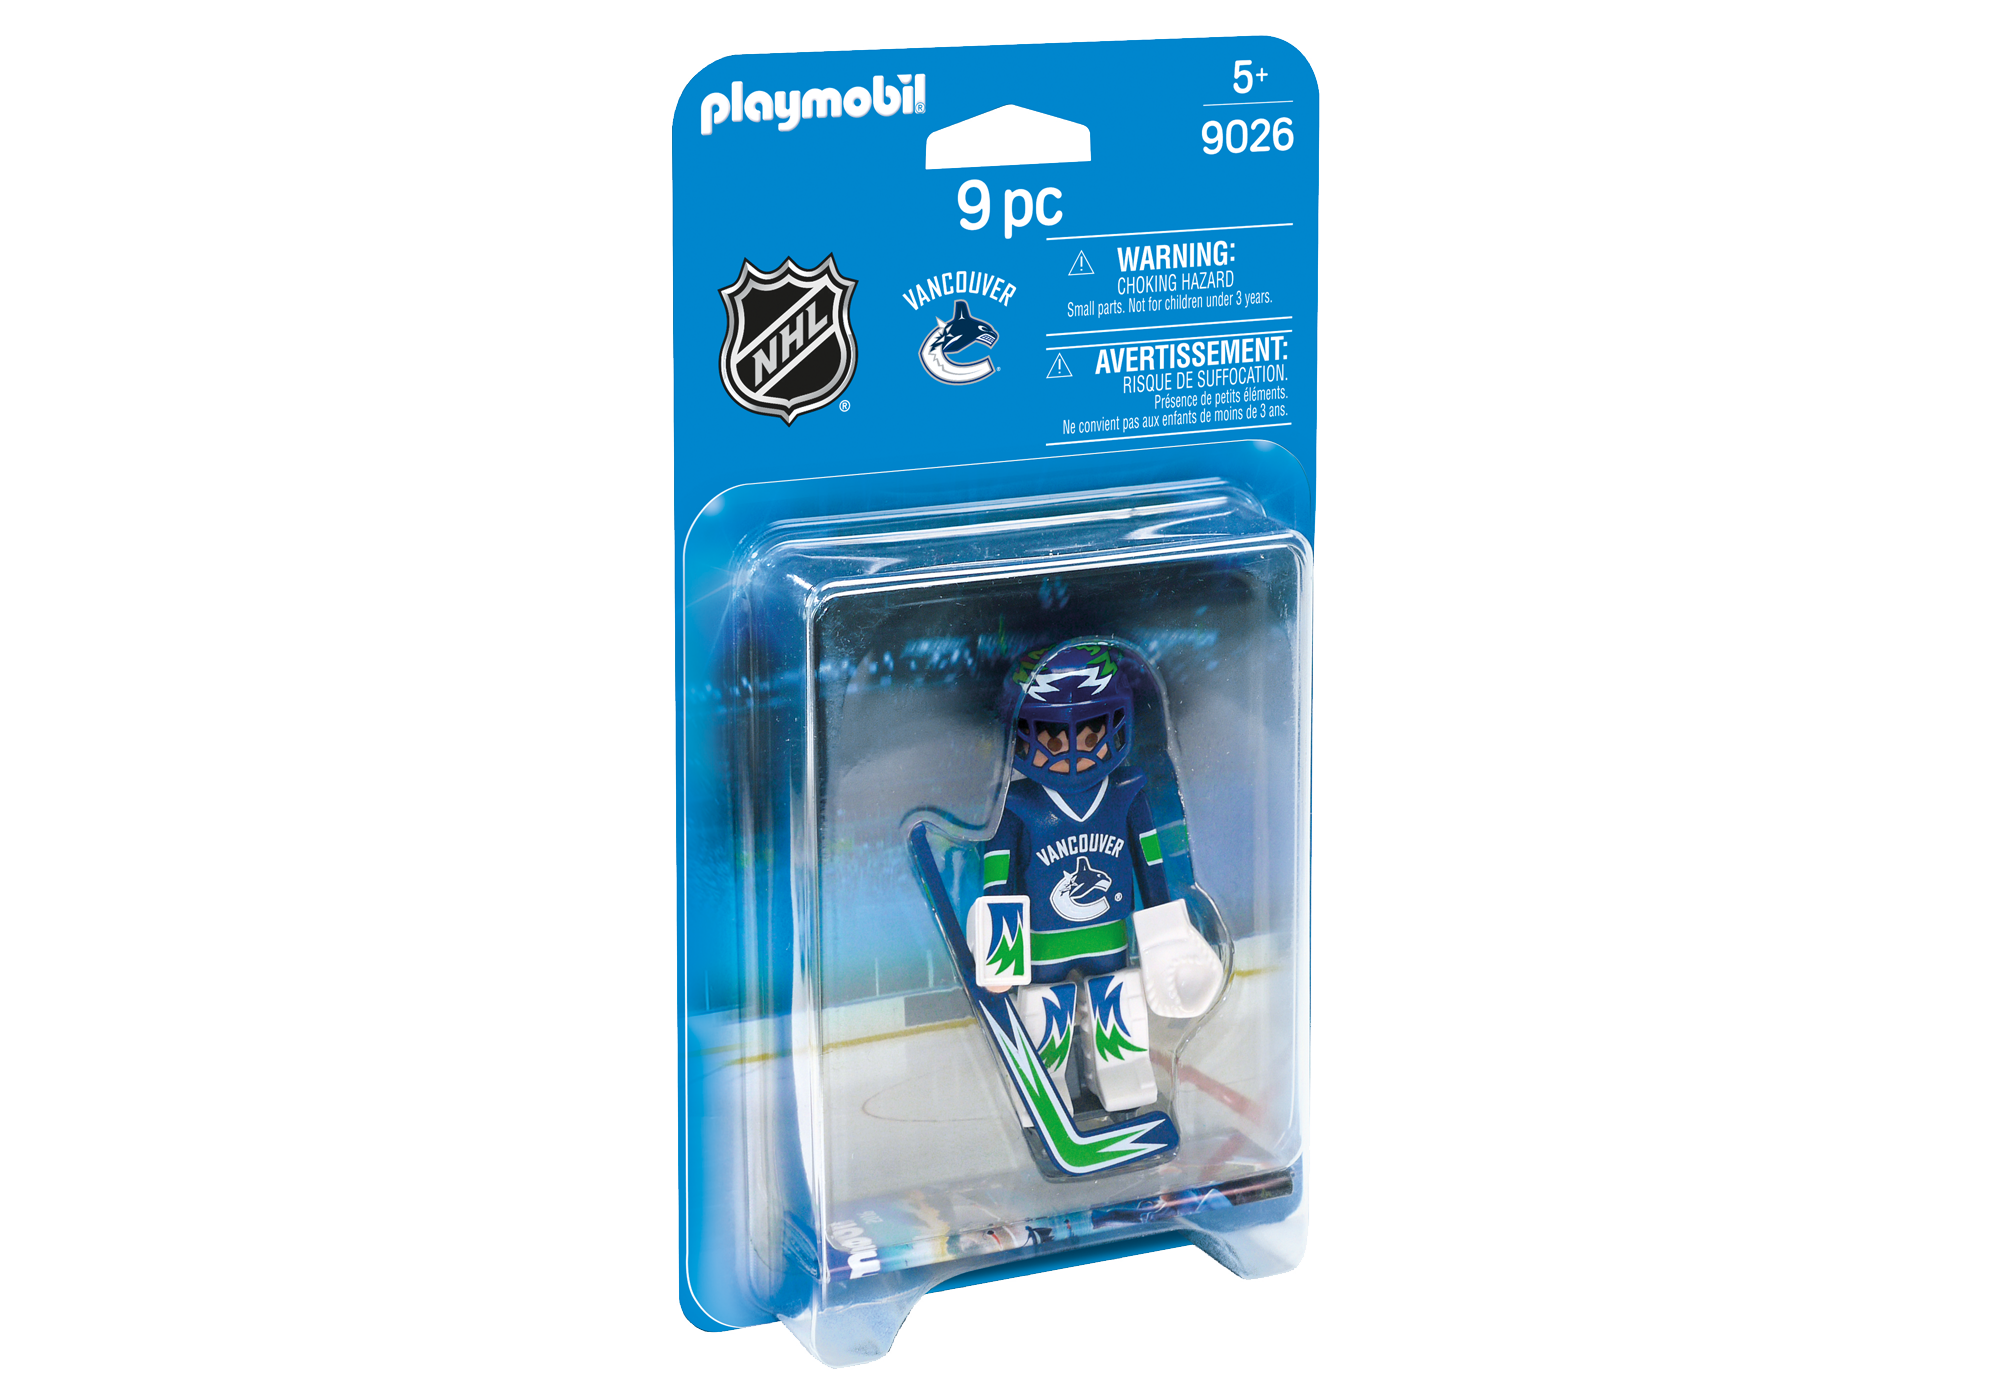 http://media.playmobil.com/i/playmobil/9026_product_box_front/NHL™ Vancouver Canucks™ Goalie